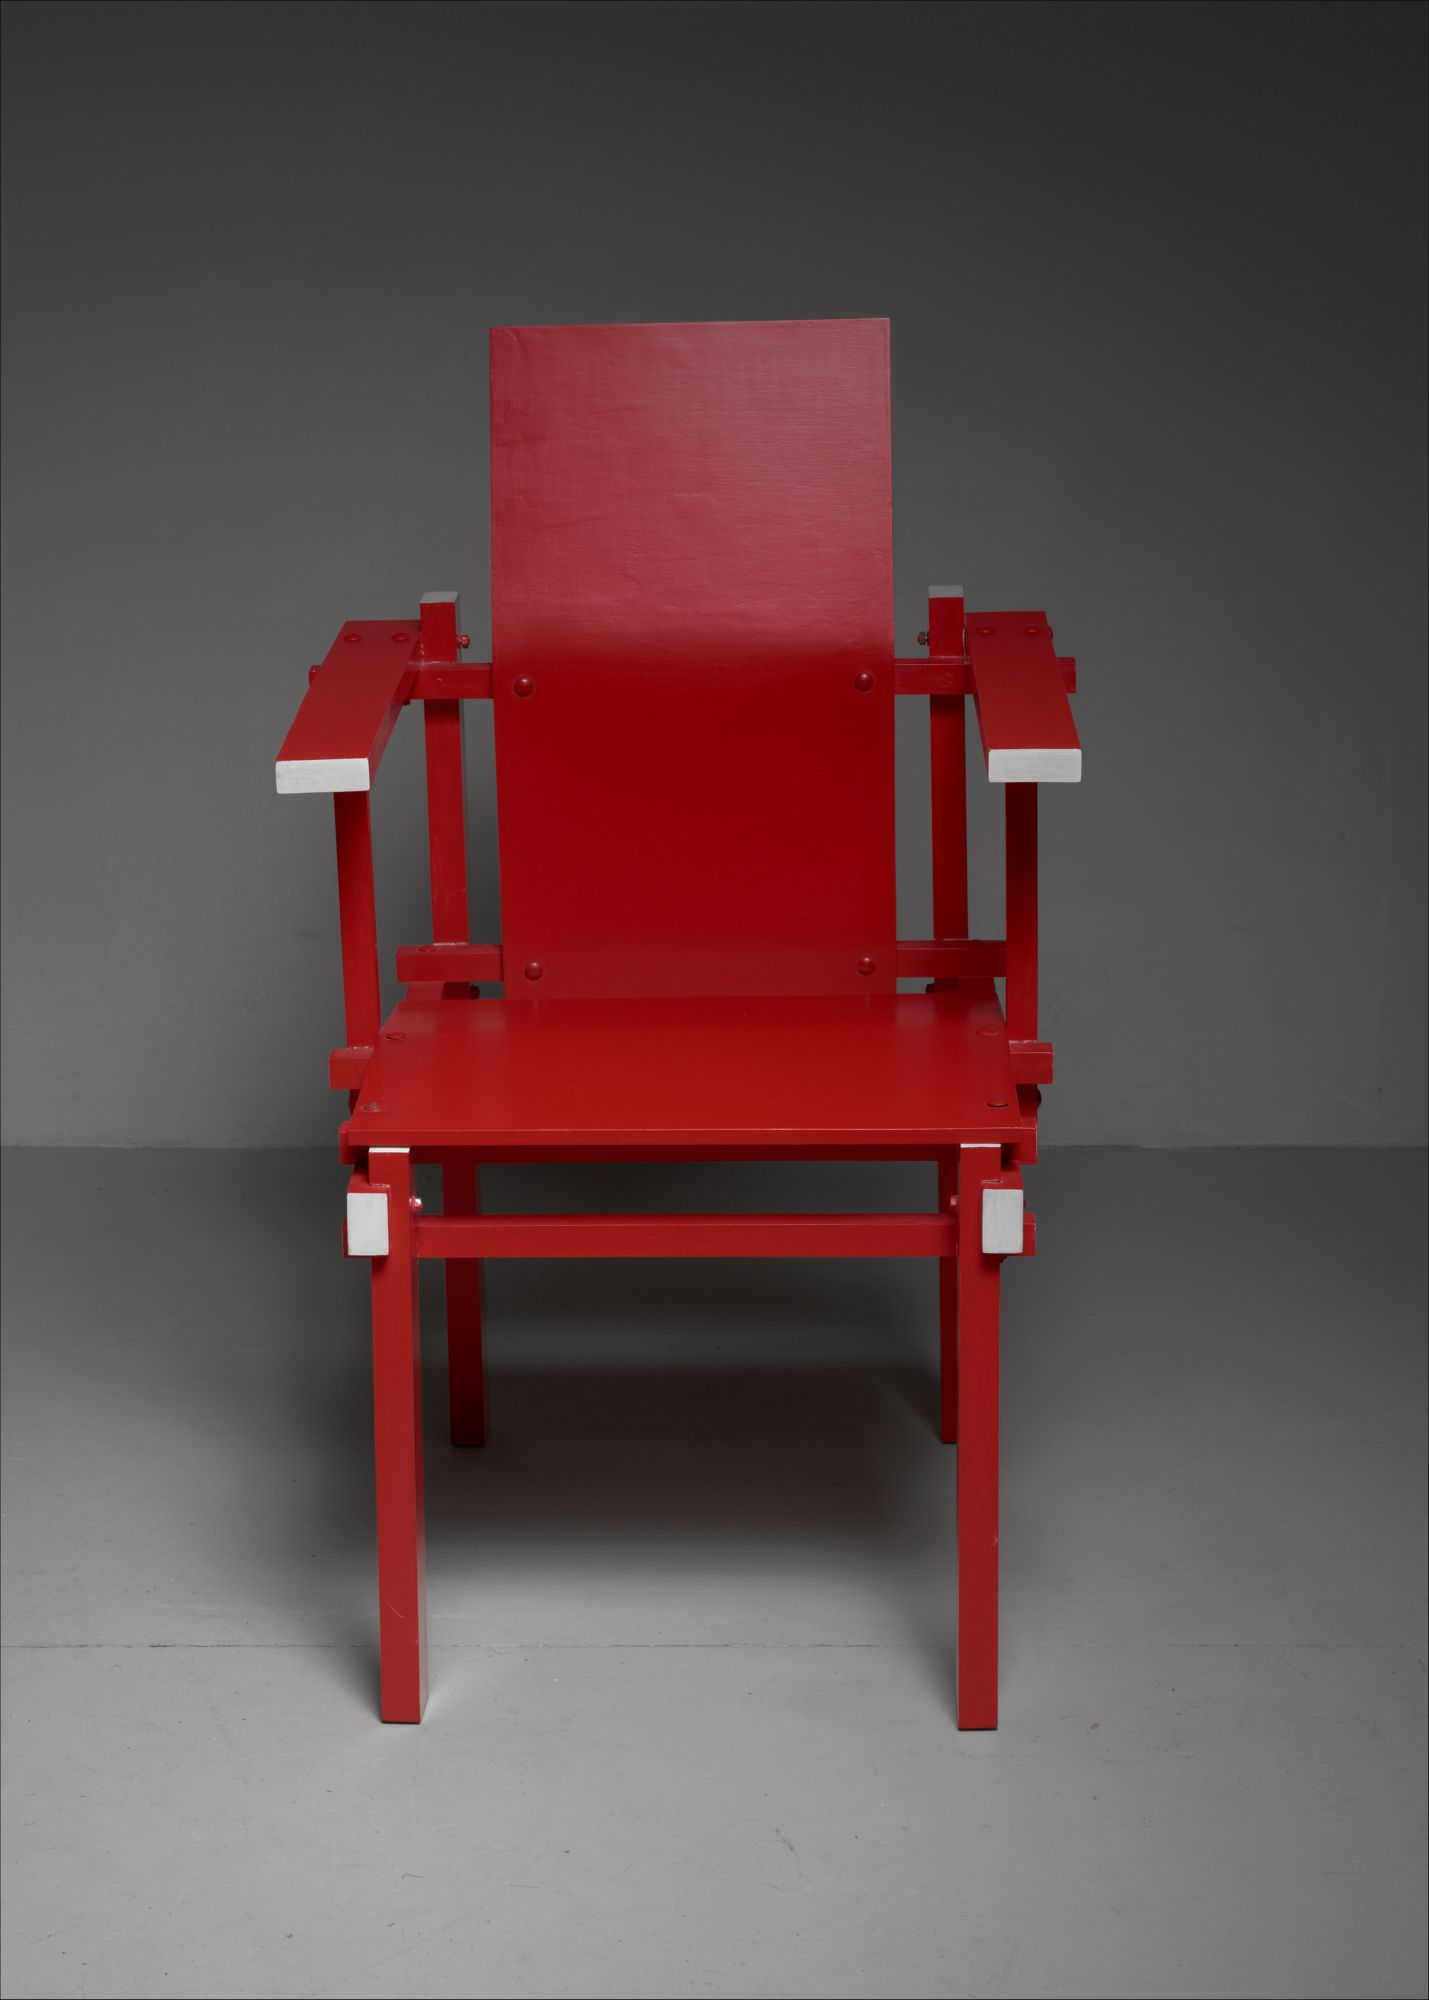 Red Gerrit Rietveld armchair, The Netherlands, 1974